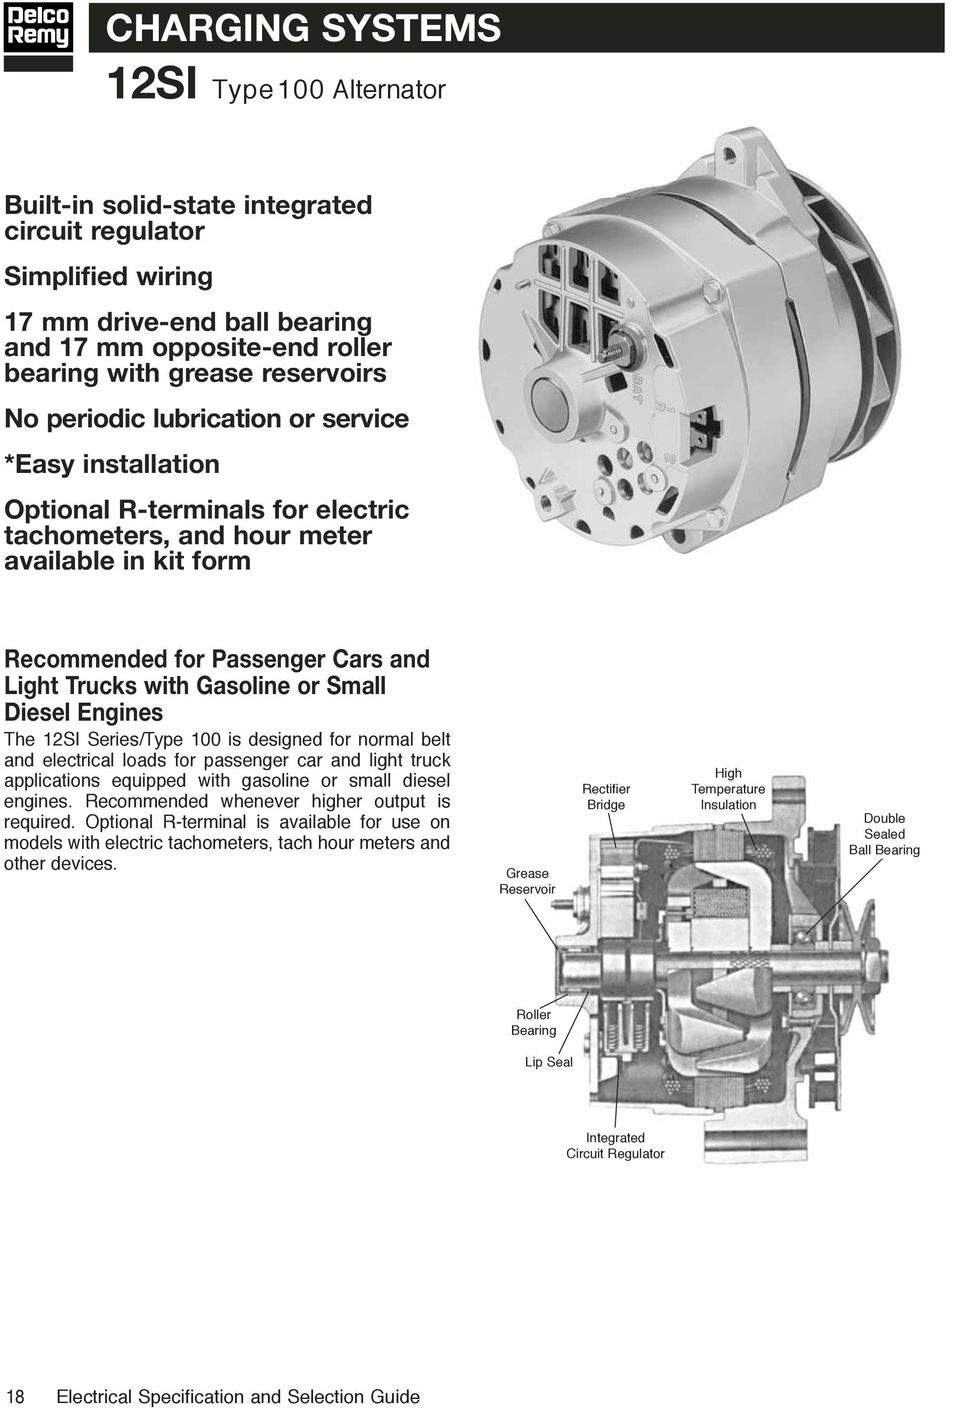 Electrical Specifications Selection Guide Pdf 27si Delco Remy Alternator Wiring Diagram Or Small Diesel Engines The 12si Series Type 100 Is Designed For Normal Belt And